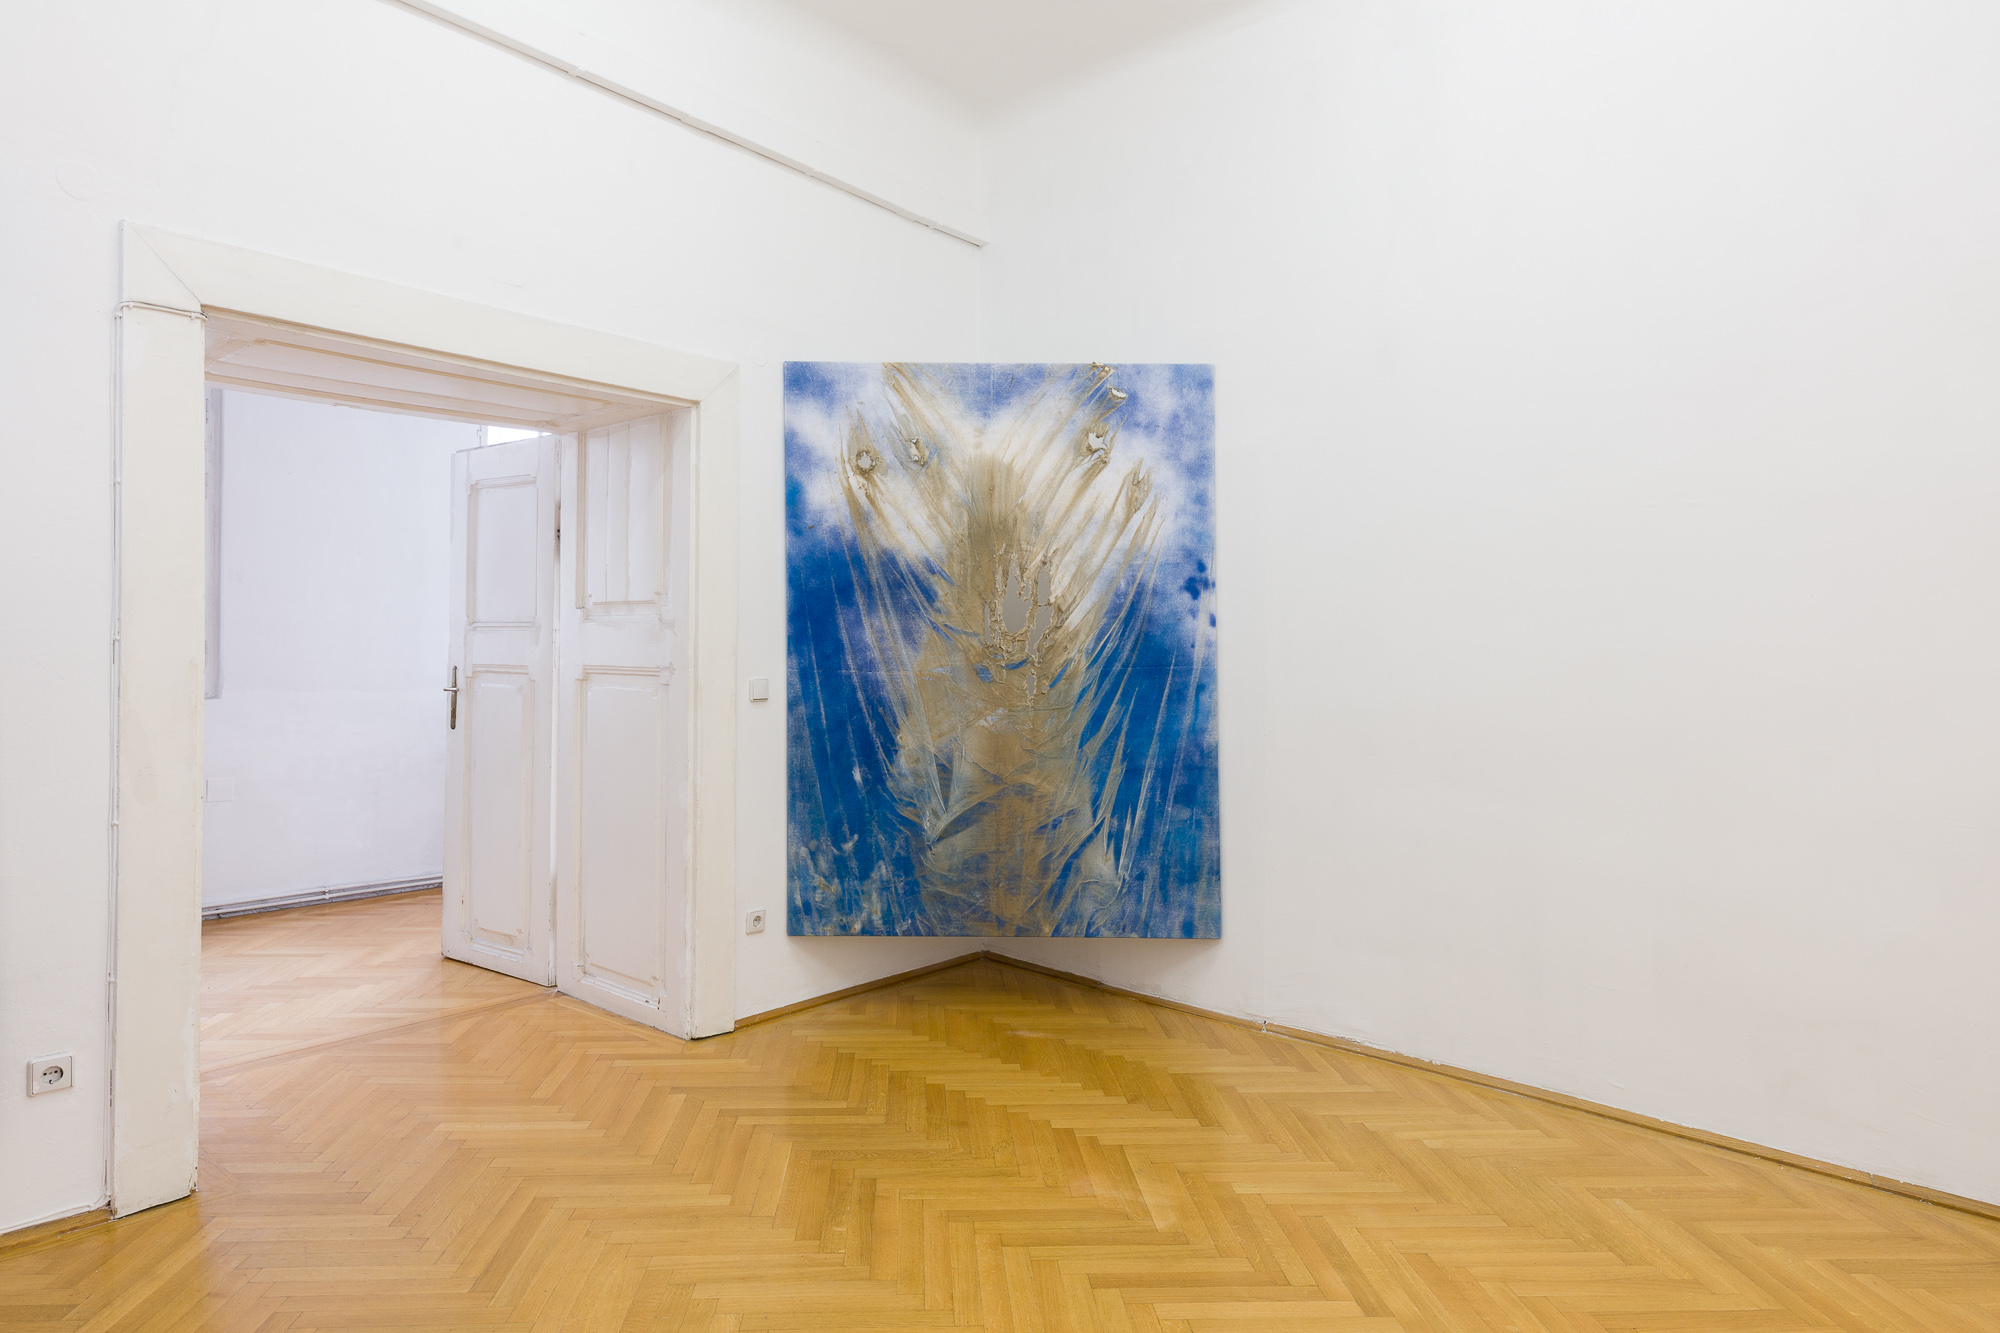 2018_09_15_Andrew Birk at Sort Vienna_by kunst-dokumentation.com_023_web.jpg